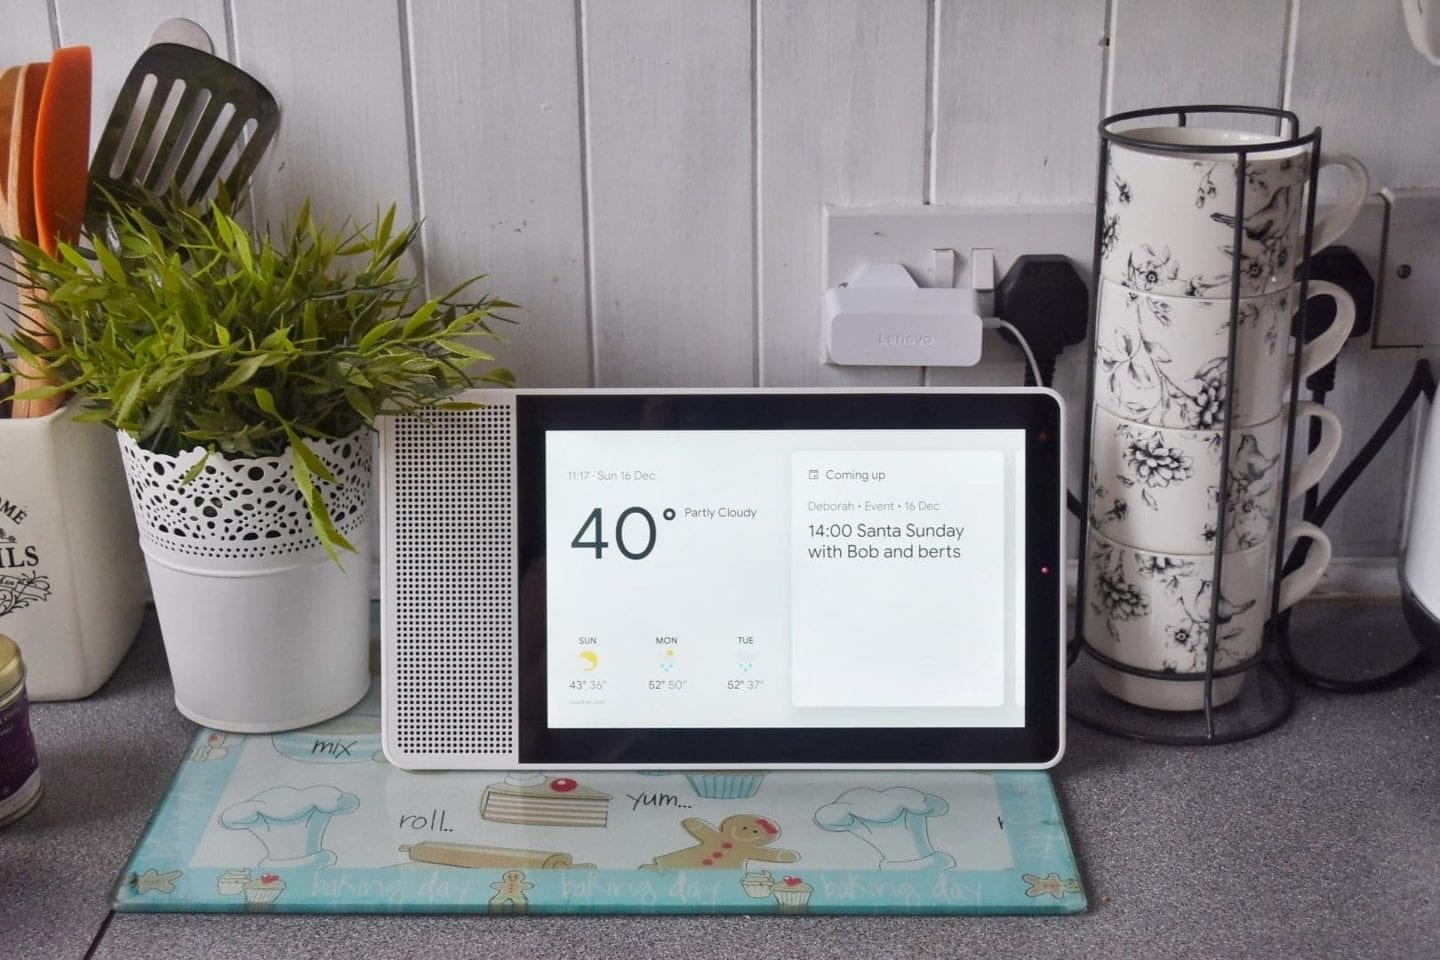 Lenovo Smart Display with Google assistant